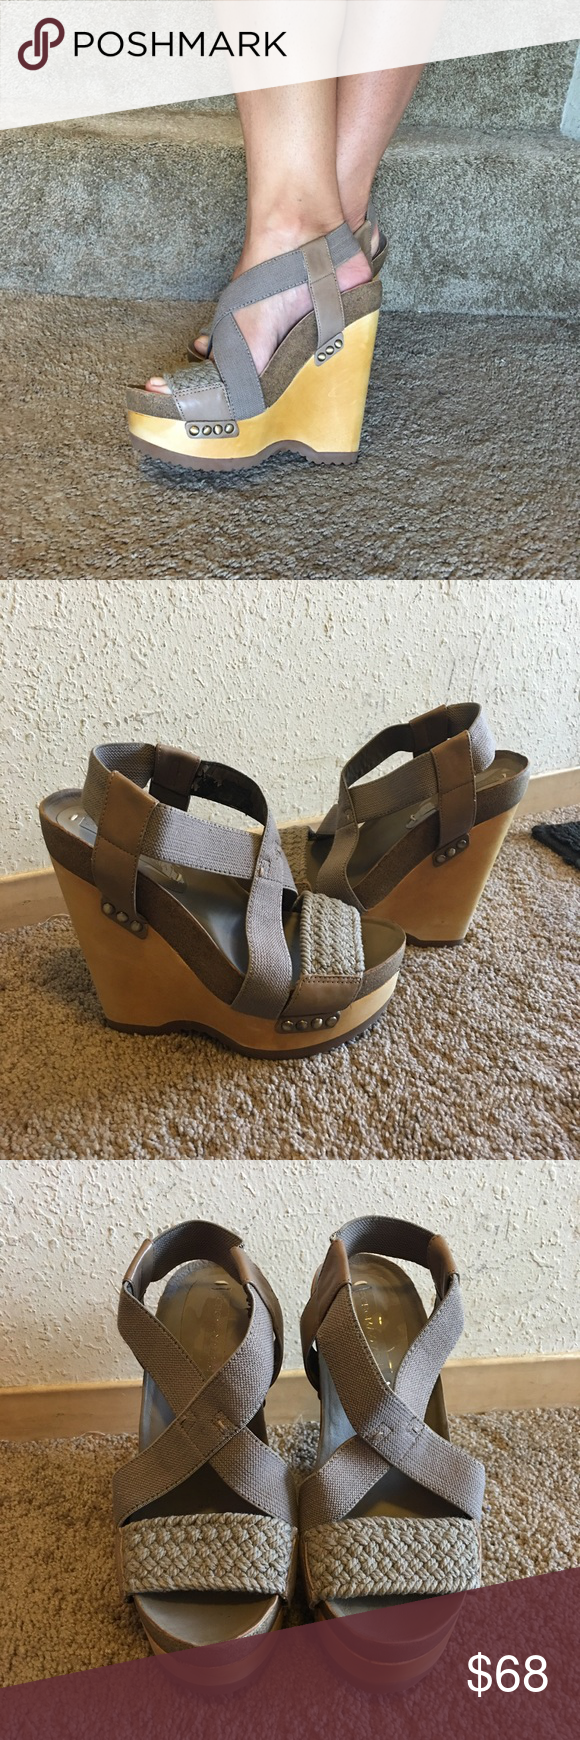 Bcbg Maxazria Taupe Wooden Wedge sandals 6.5 Bcbg wedge Sandals  Brand NEW / No Box but will be shipped in one!  Size: 6.5 / 36.5 (Perfect for sizes 6 - 6.5) Wooden Wedge With rubber bottoms Taupe almost olive color woven material, leather and elastic straps Embellished with metal studs throughout   Note:  These sandals are Brand NEW!  The only flaw is some peeling on the inside of the strap which cannot be seen at all when worn. Please refer to last picture bottom left!  Price is firm…